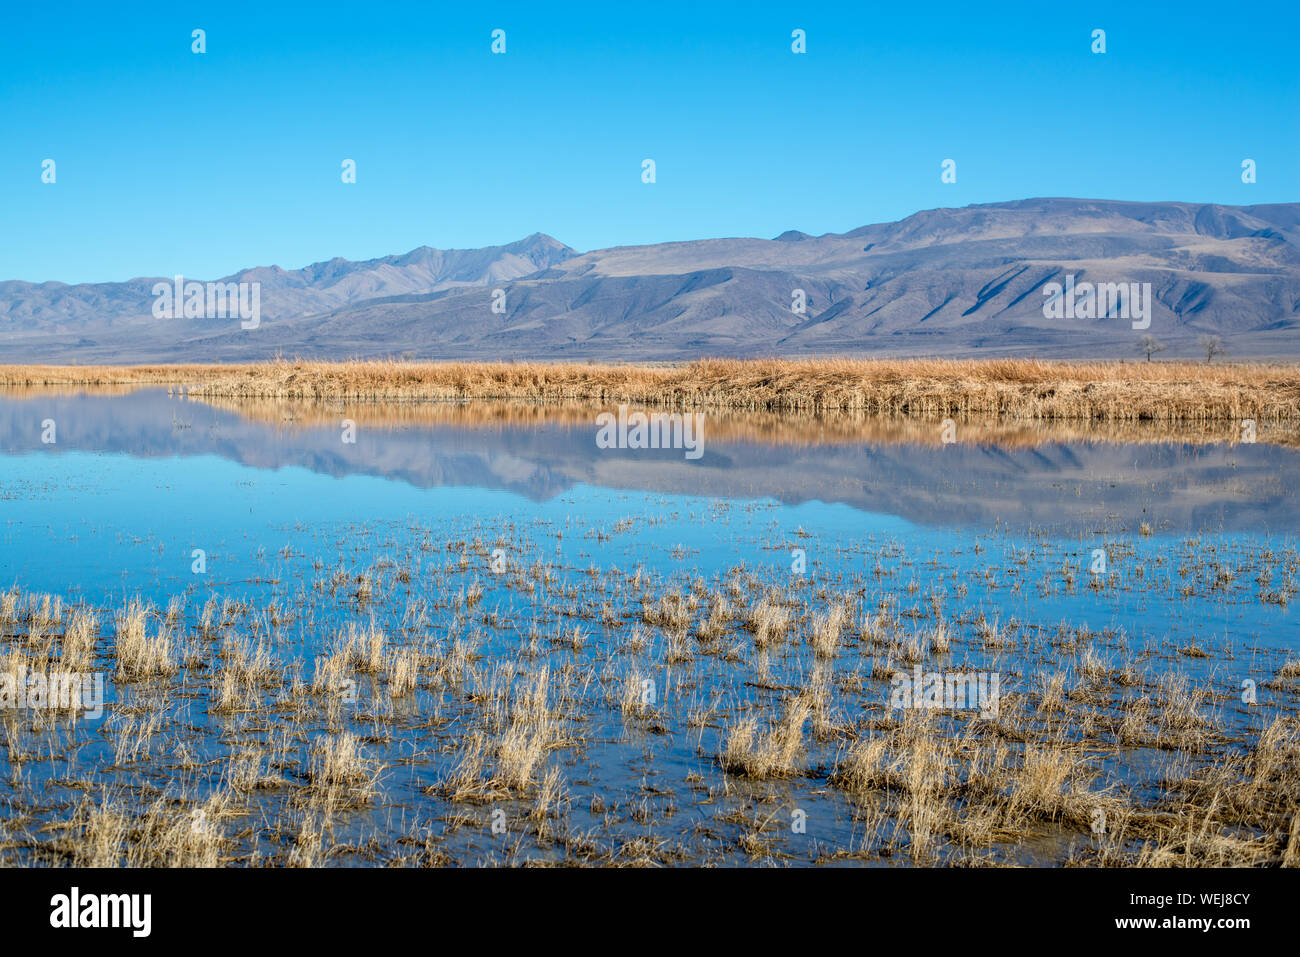 USA, Nevada, Churchill County, Stillwater National Wildlife Refuge. Strong blue yellow color contrast in the reflection of Foxtail Lake reeds. Stock Photo